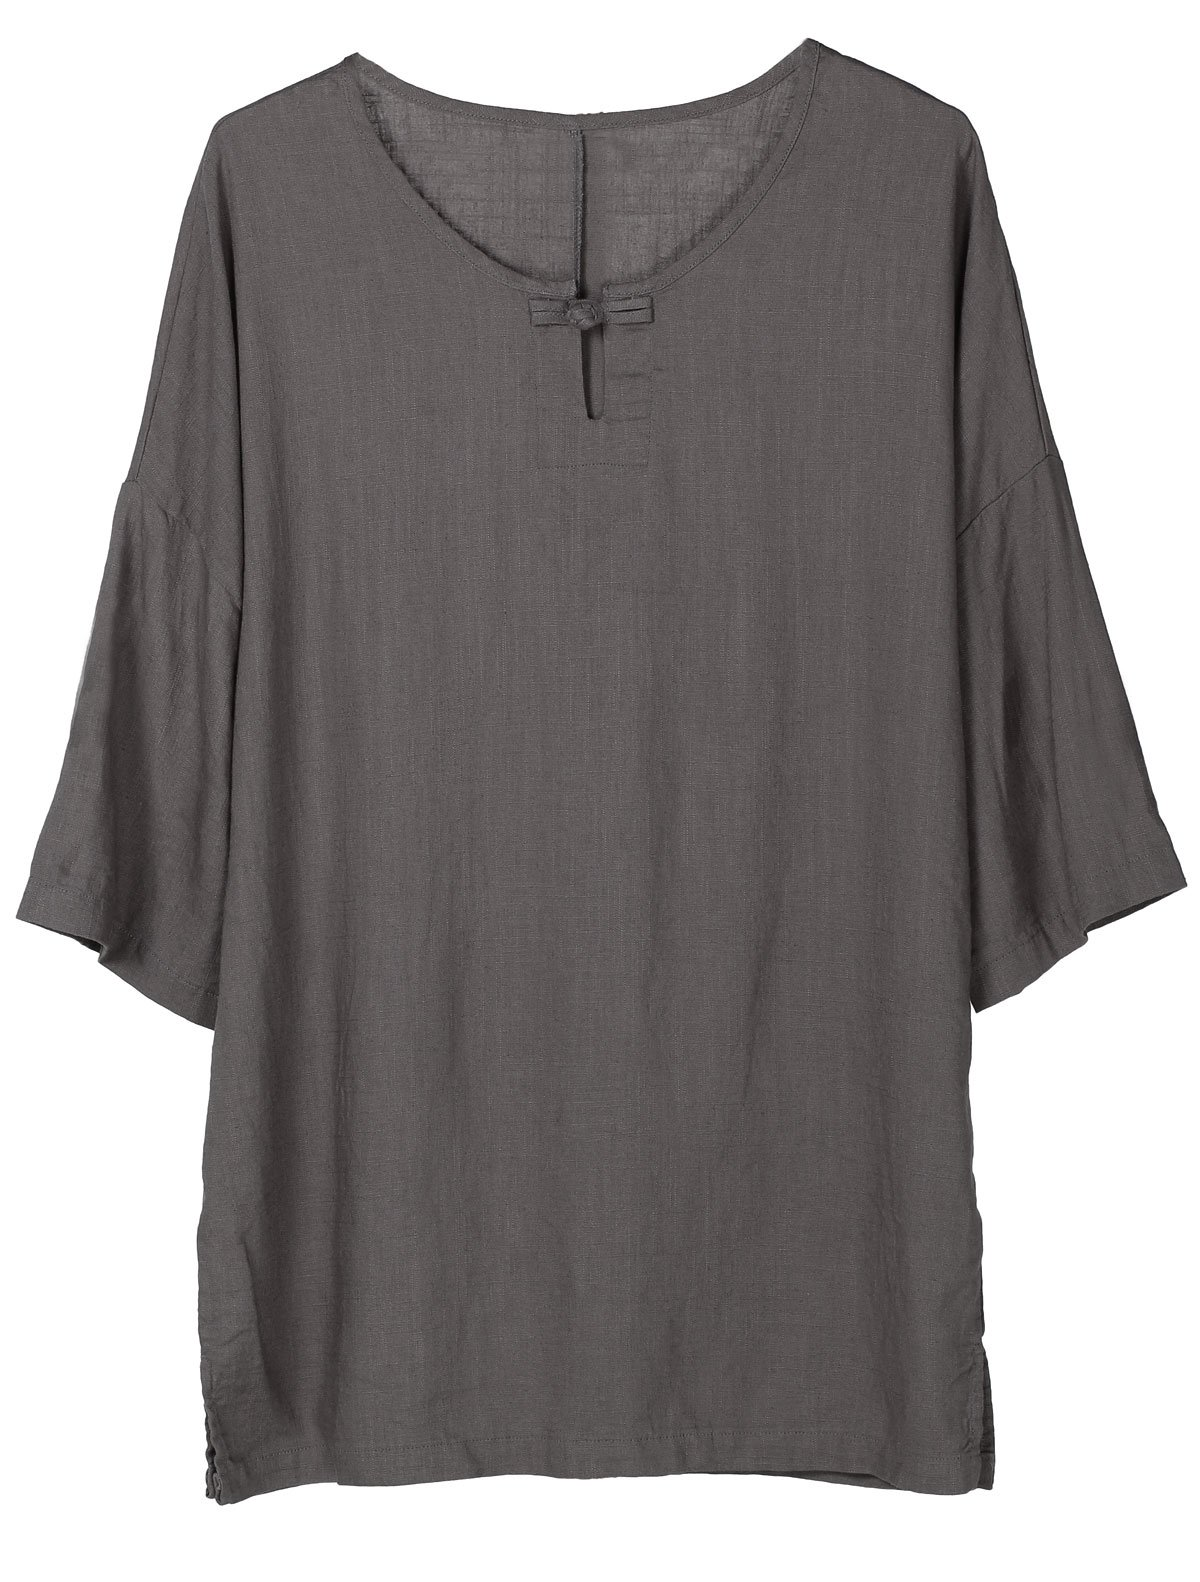 Minibee Women's Elbow Sleeve Linen Tunic Tops Solid Color Retro Blouse Gray L